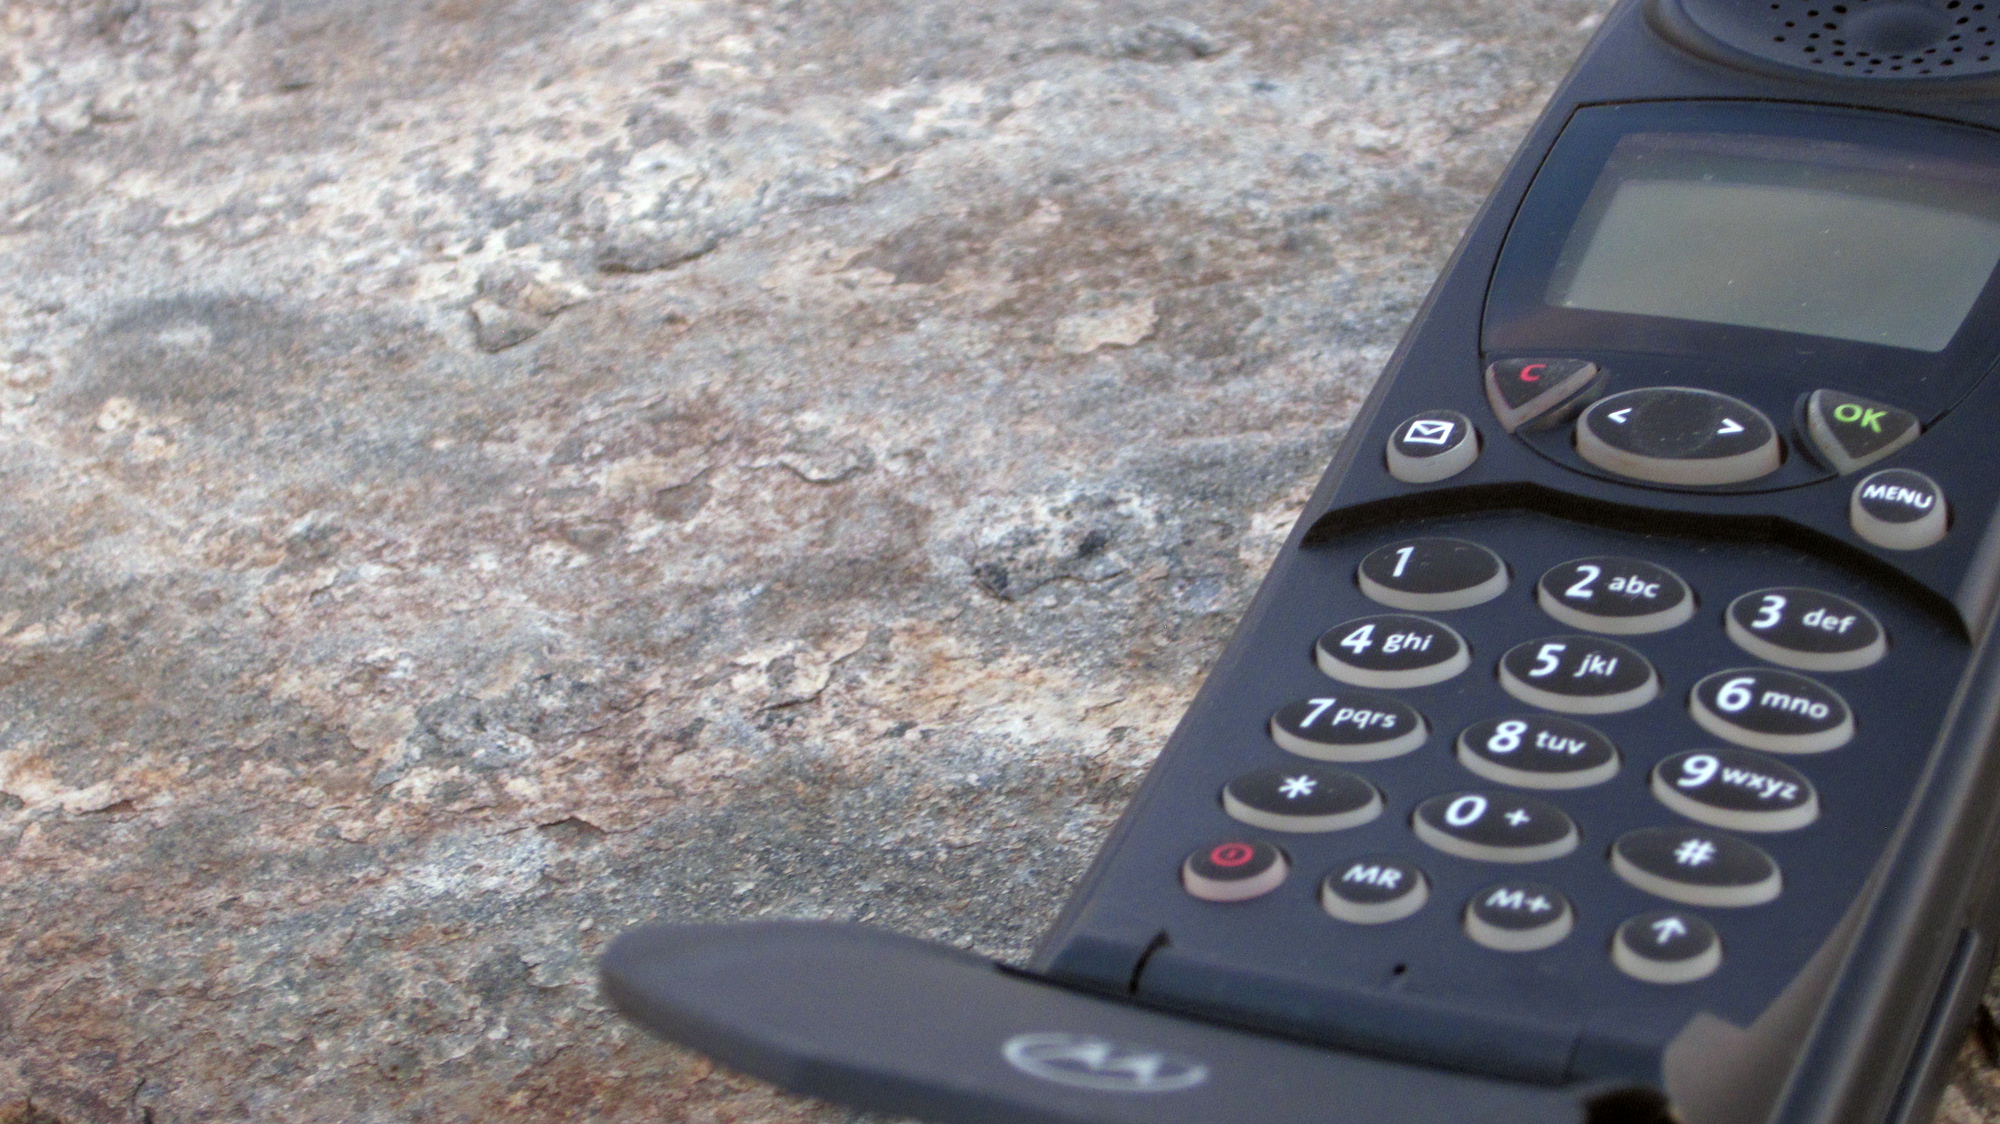 iridium-motorola-9500-sat-phone-laying-in-a-rock.png